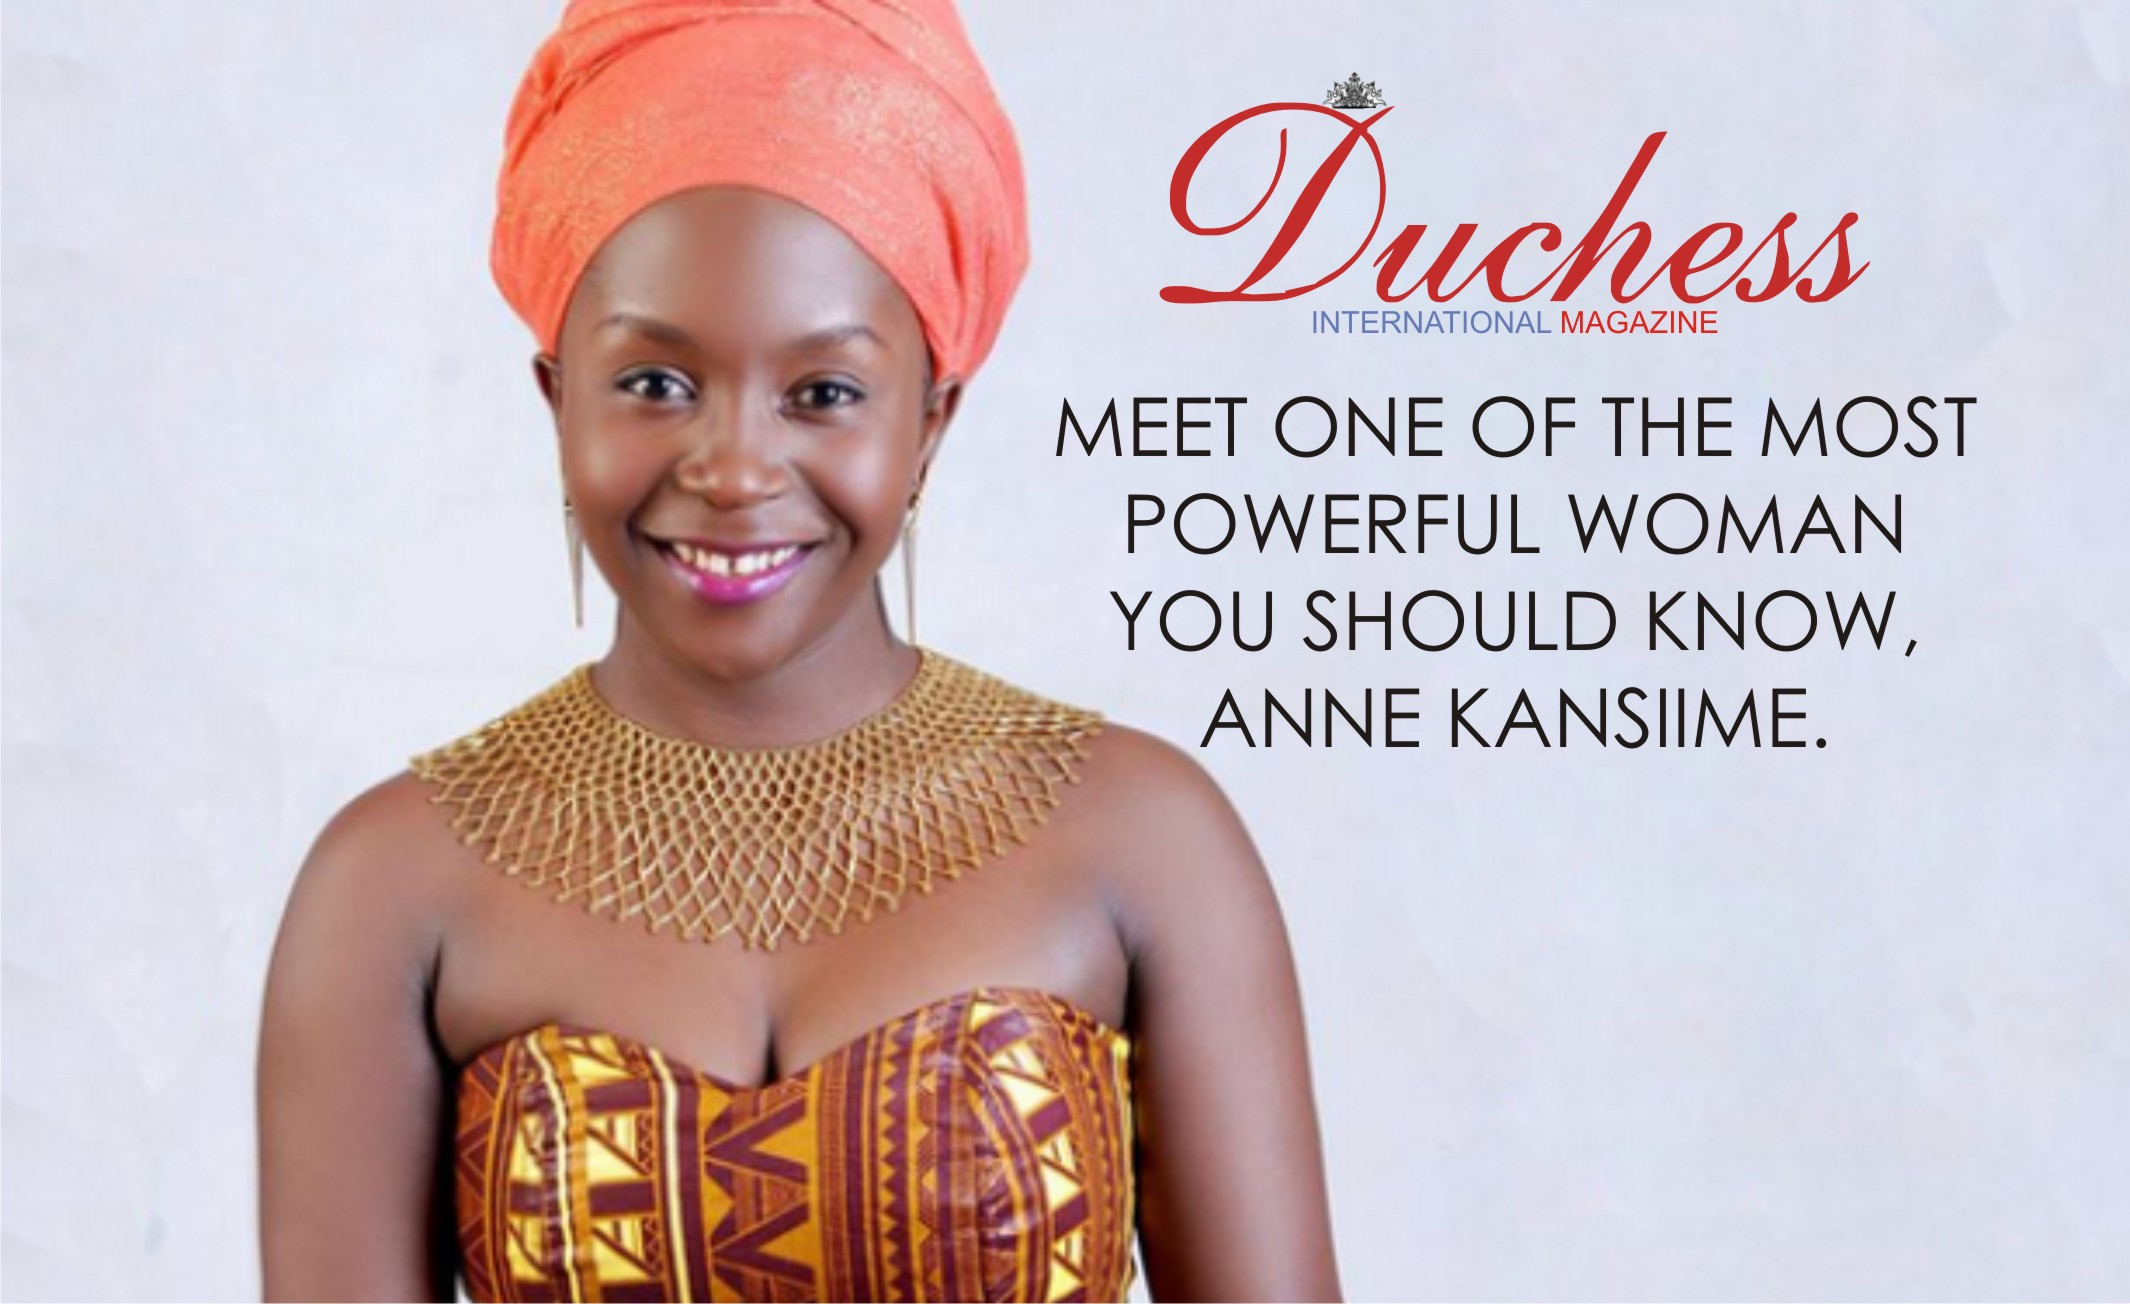 MEET ONE OF THE MOST POWERFUL WOMAN YOU SHOULD KNOW, ANNE KANSIIME .